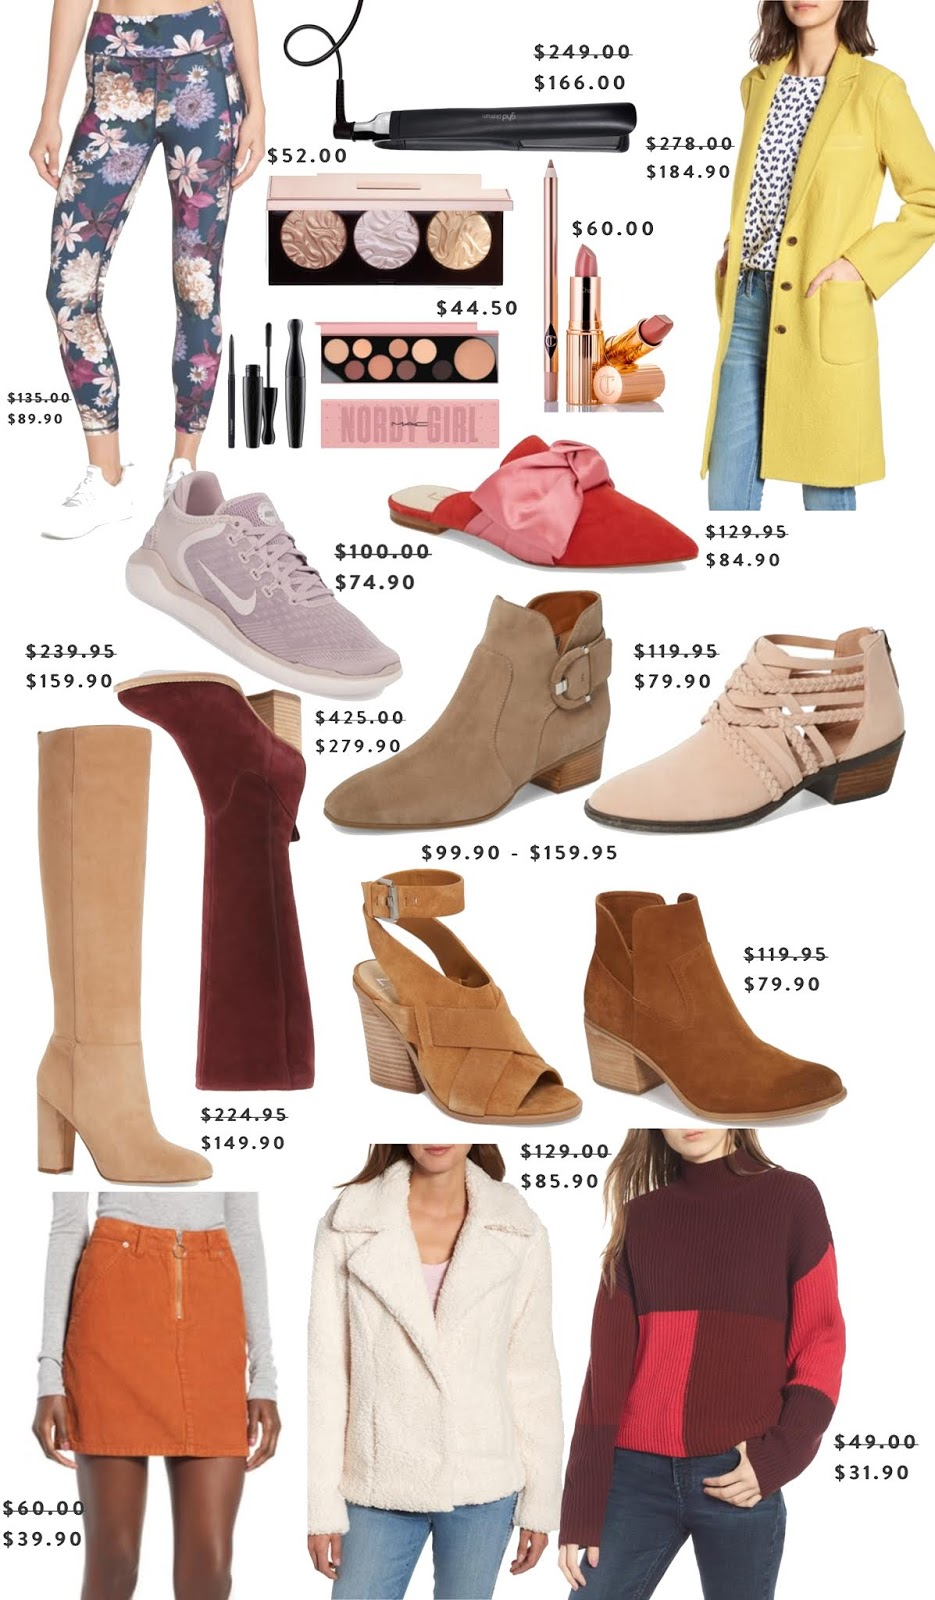 Peek into the 2018 Nordstrom Anniversary Sale Catalo: What I'm Eyeing - Something Delightful Blog